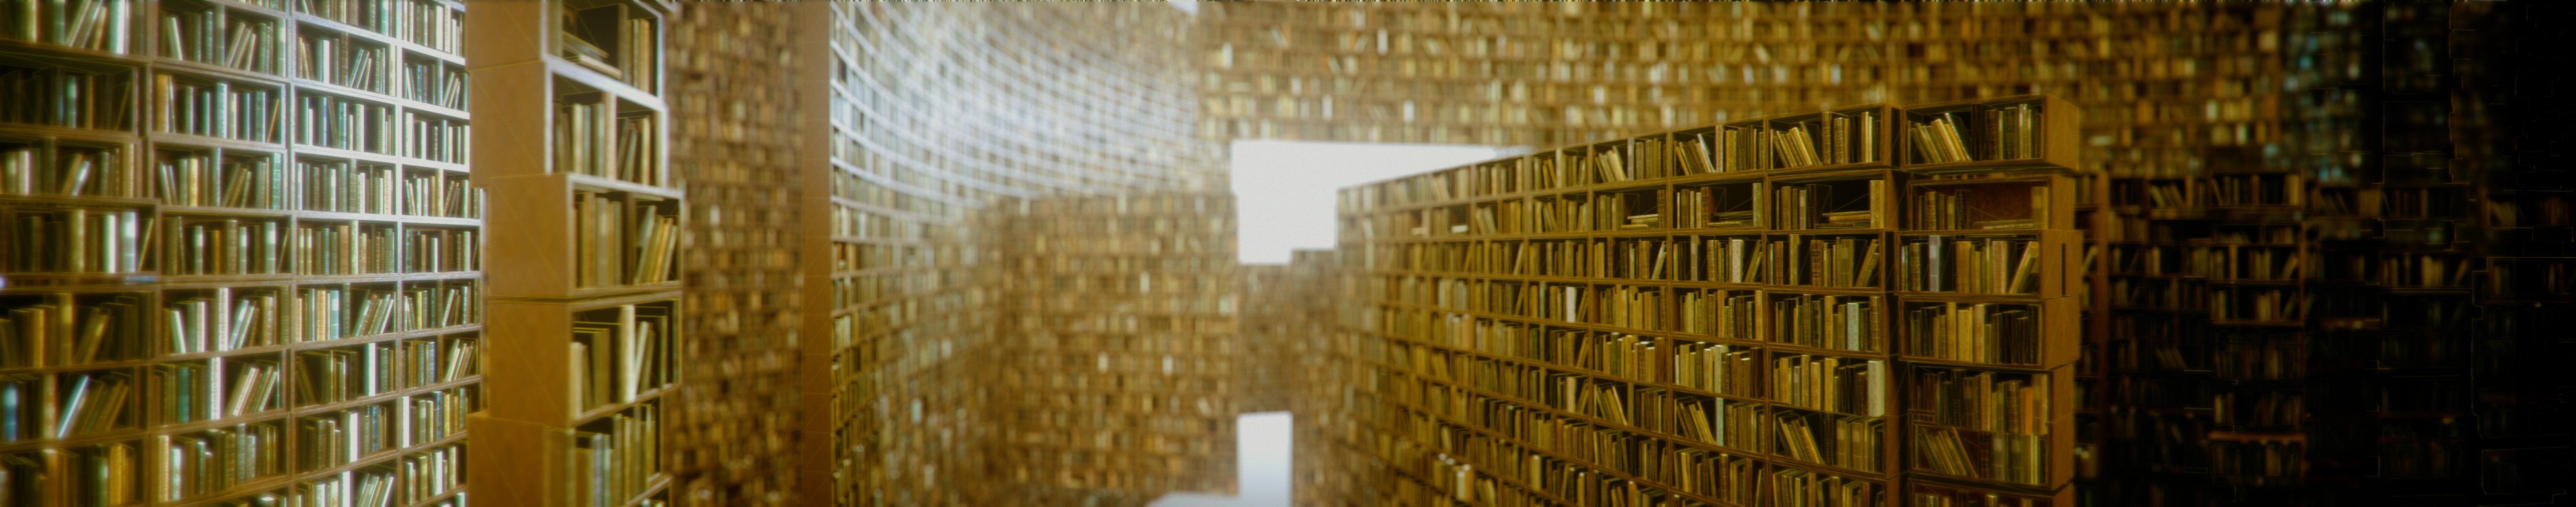 3d infinite library